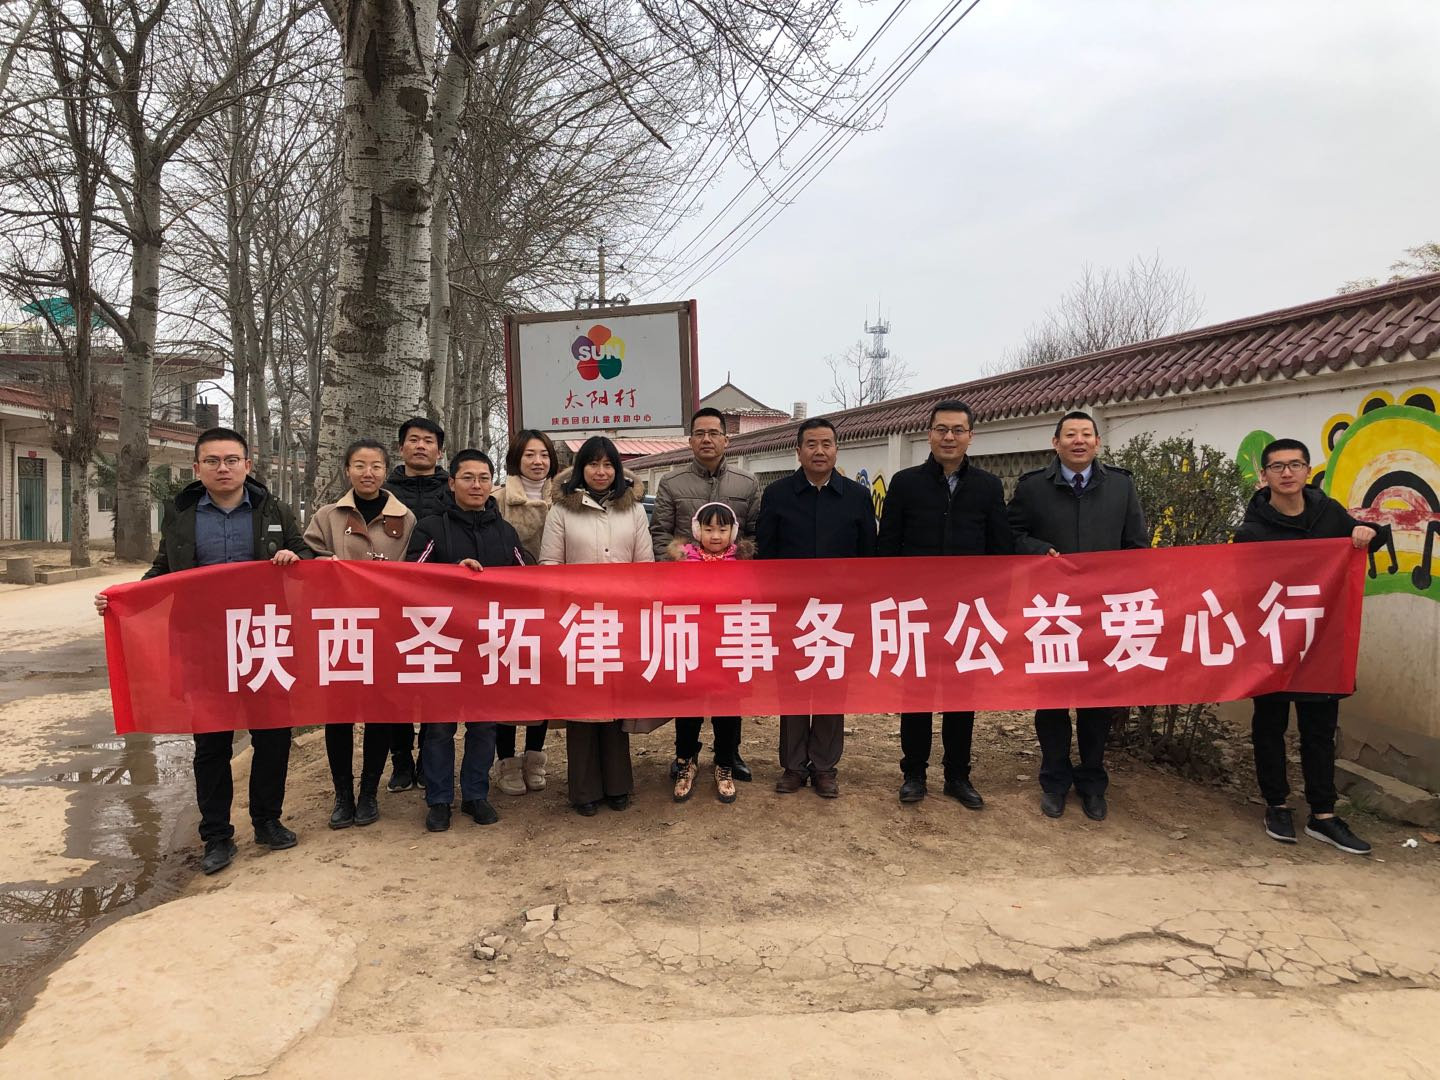 Shaanxi Shengtuo Law Firm keeps in mind the sense of social responsibility